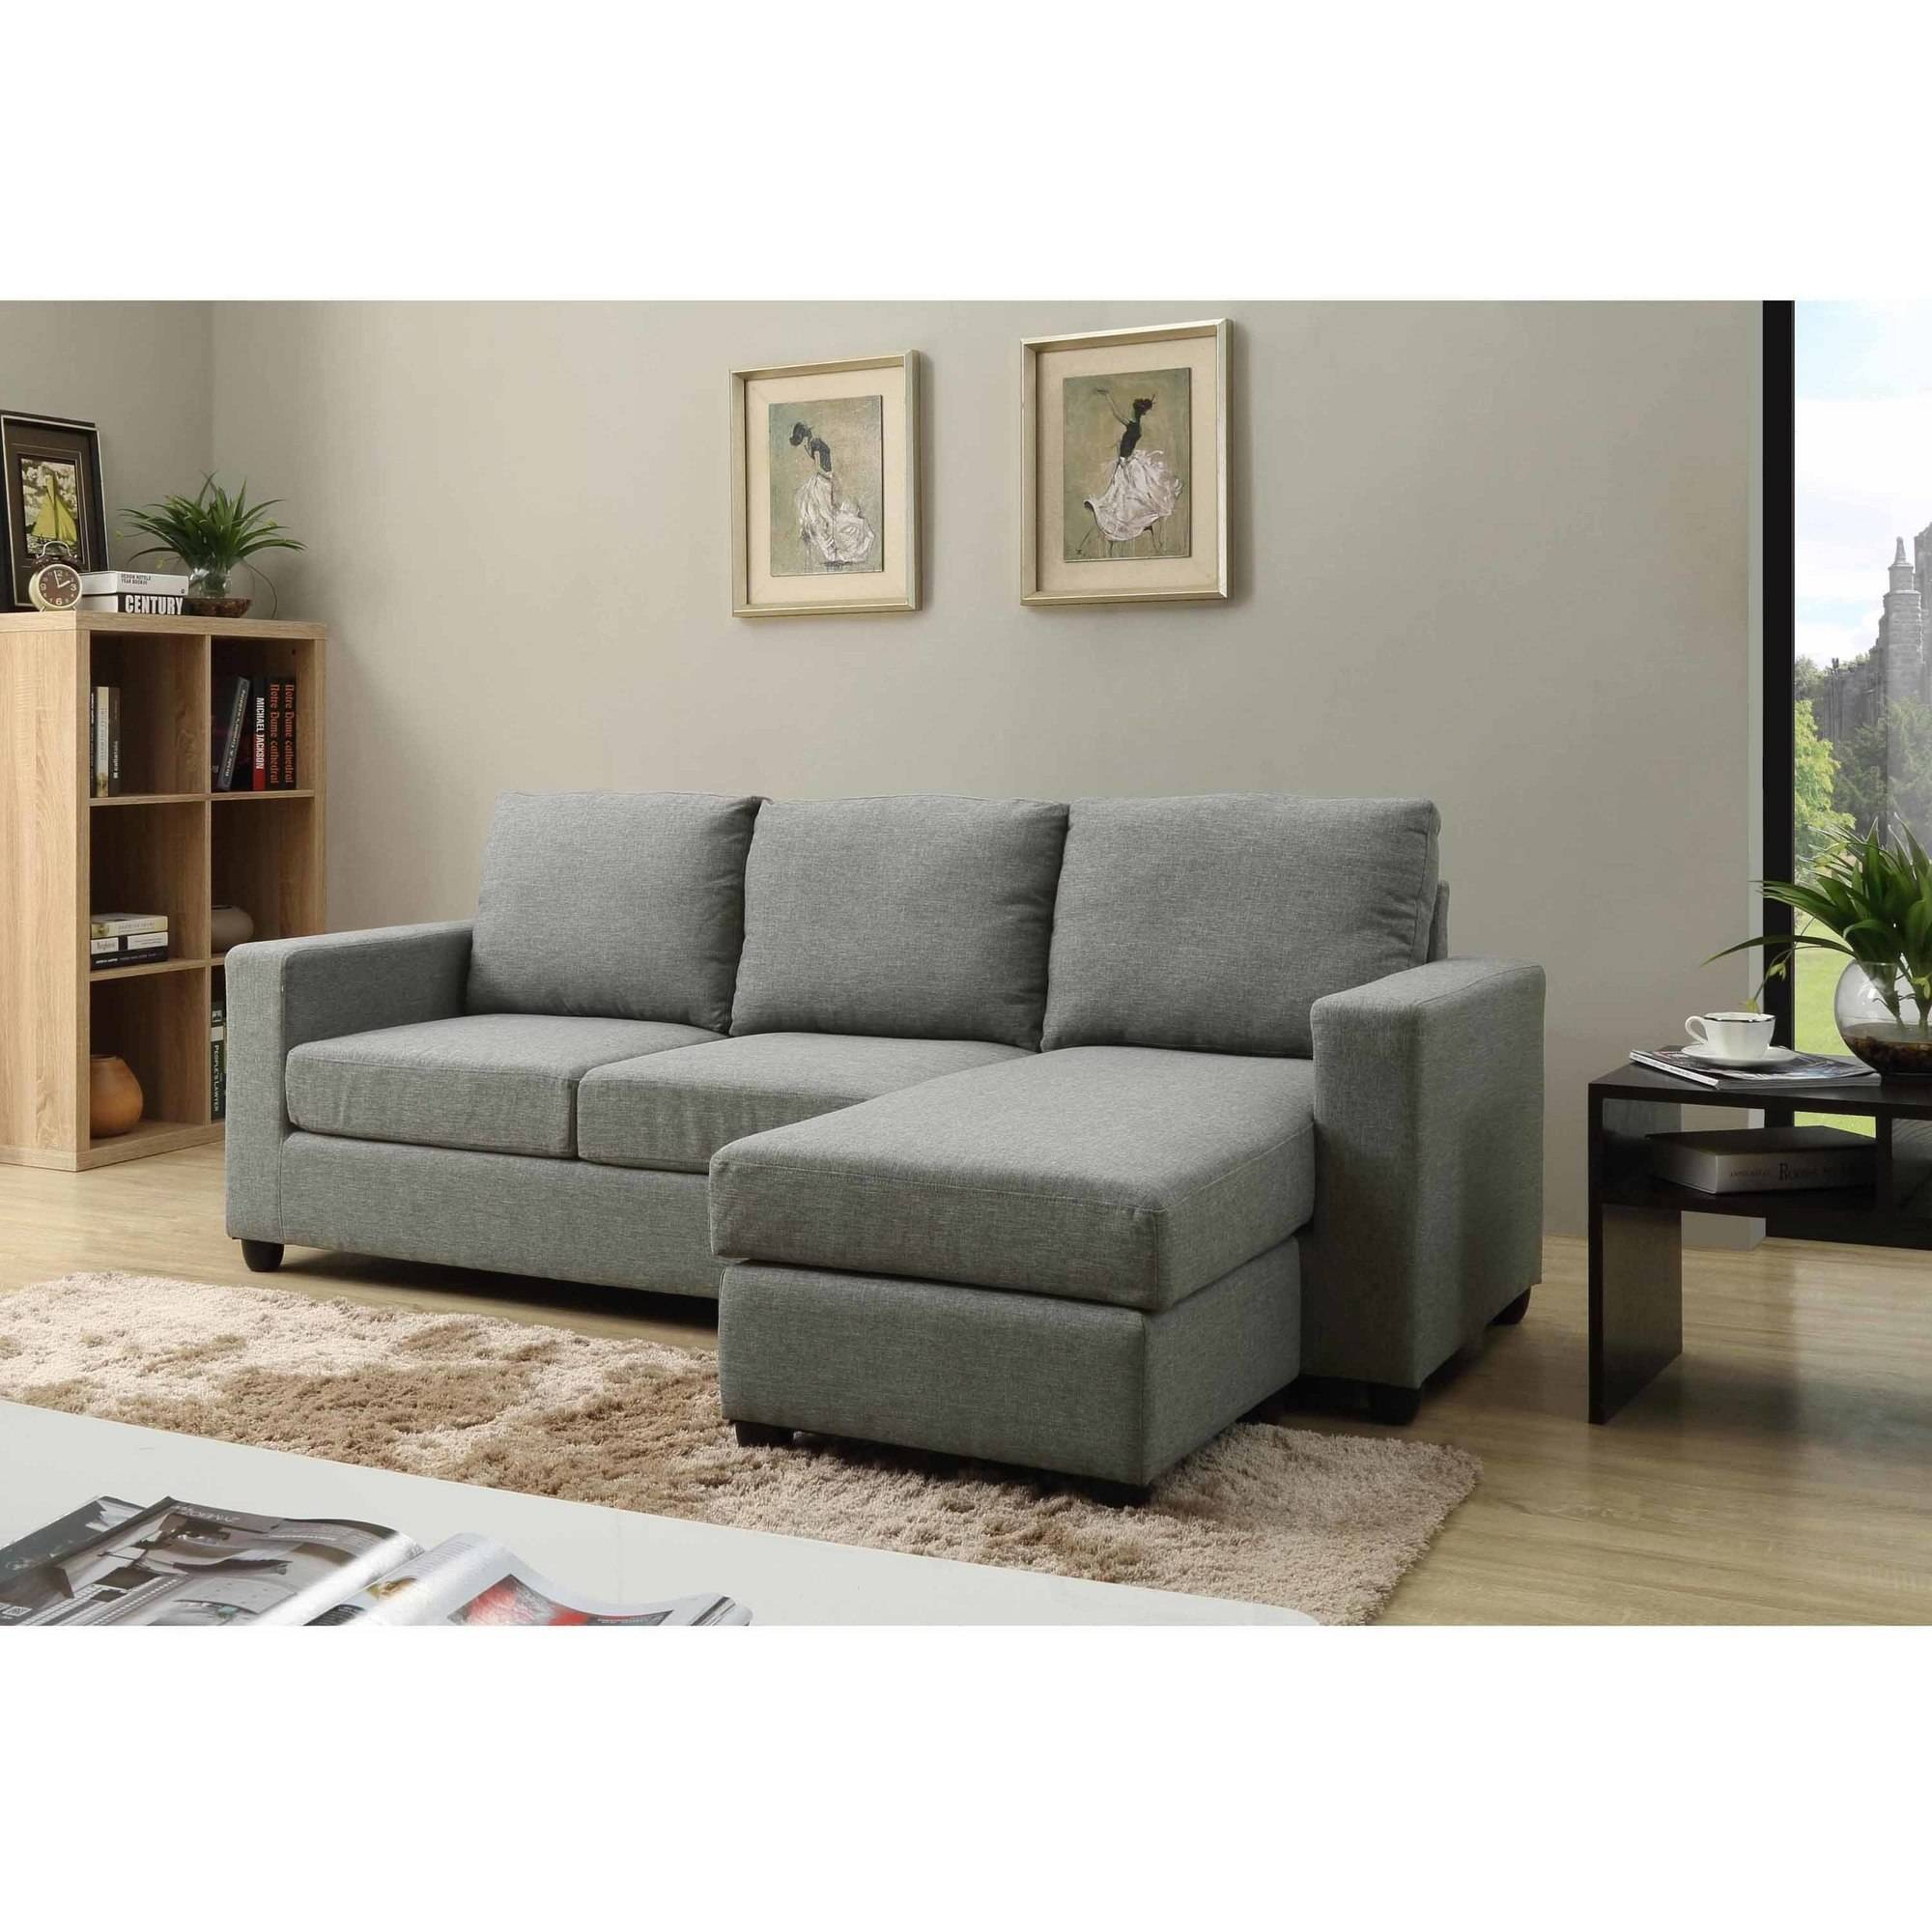 Nathaniel Home Alexandra Small Space Convertible Sectional Multiple